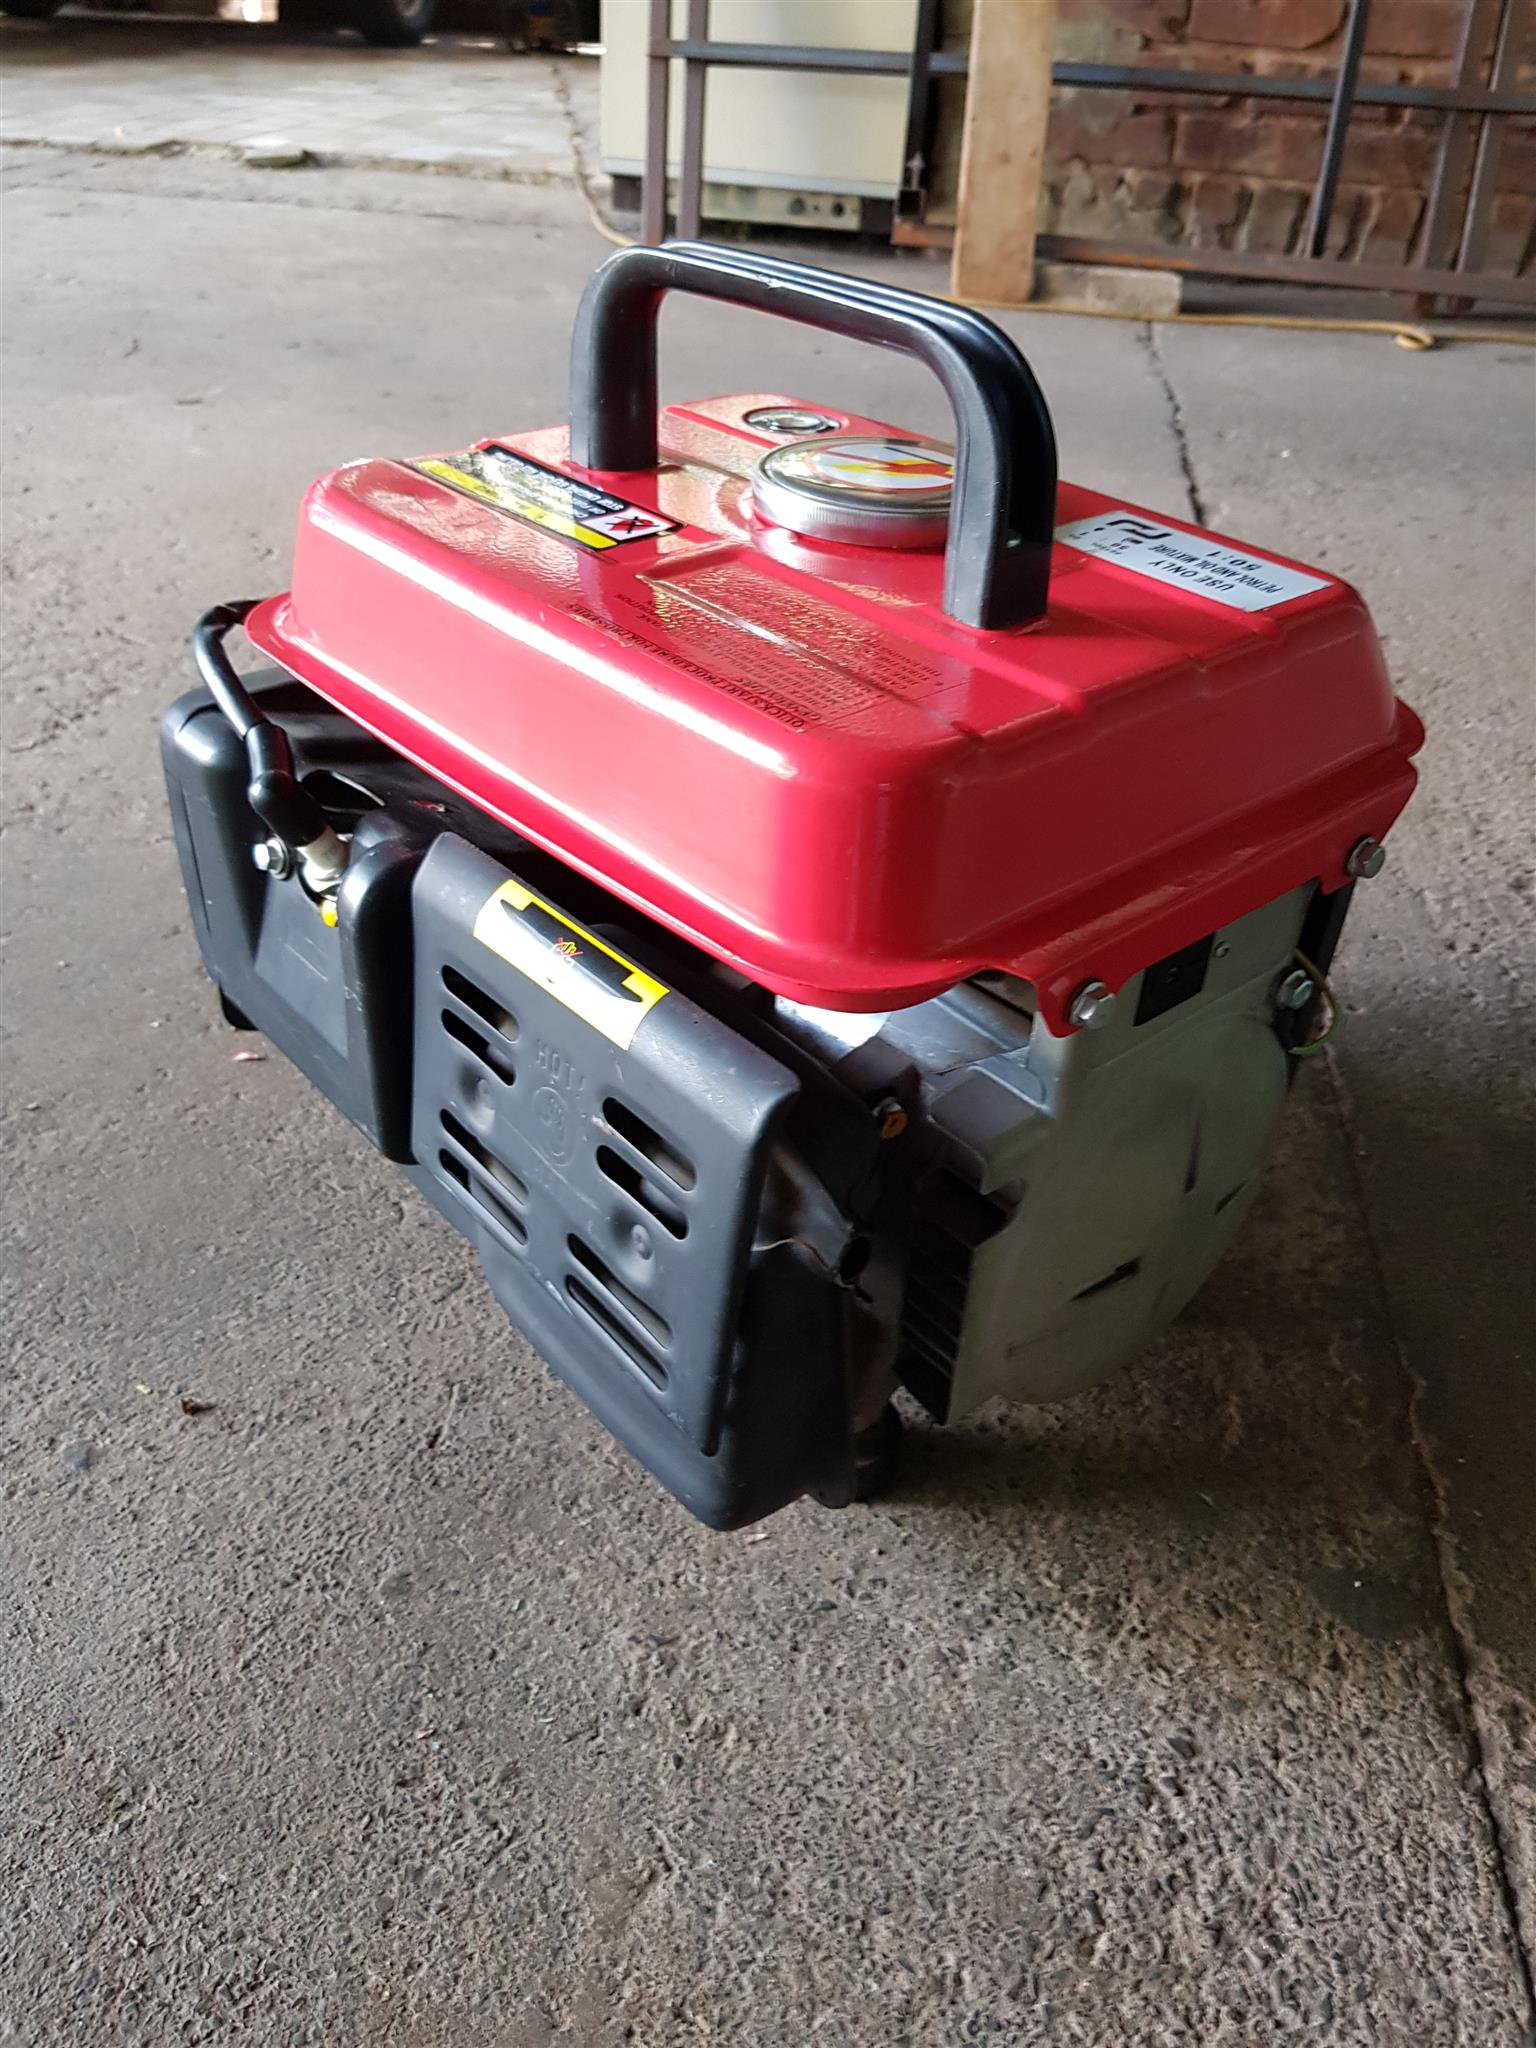 Portable LT950 petrol 240v generator ideal for load shedding in excellent condition , only used a few times - R1495 cash if you collect. I CAN DELIVER for only R100 in Pretoria area. Whatsapp , sms or call Pierre on 0825784861.